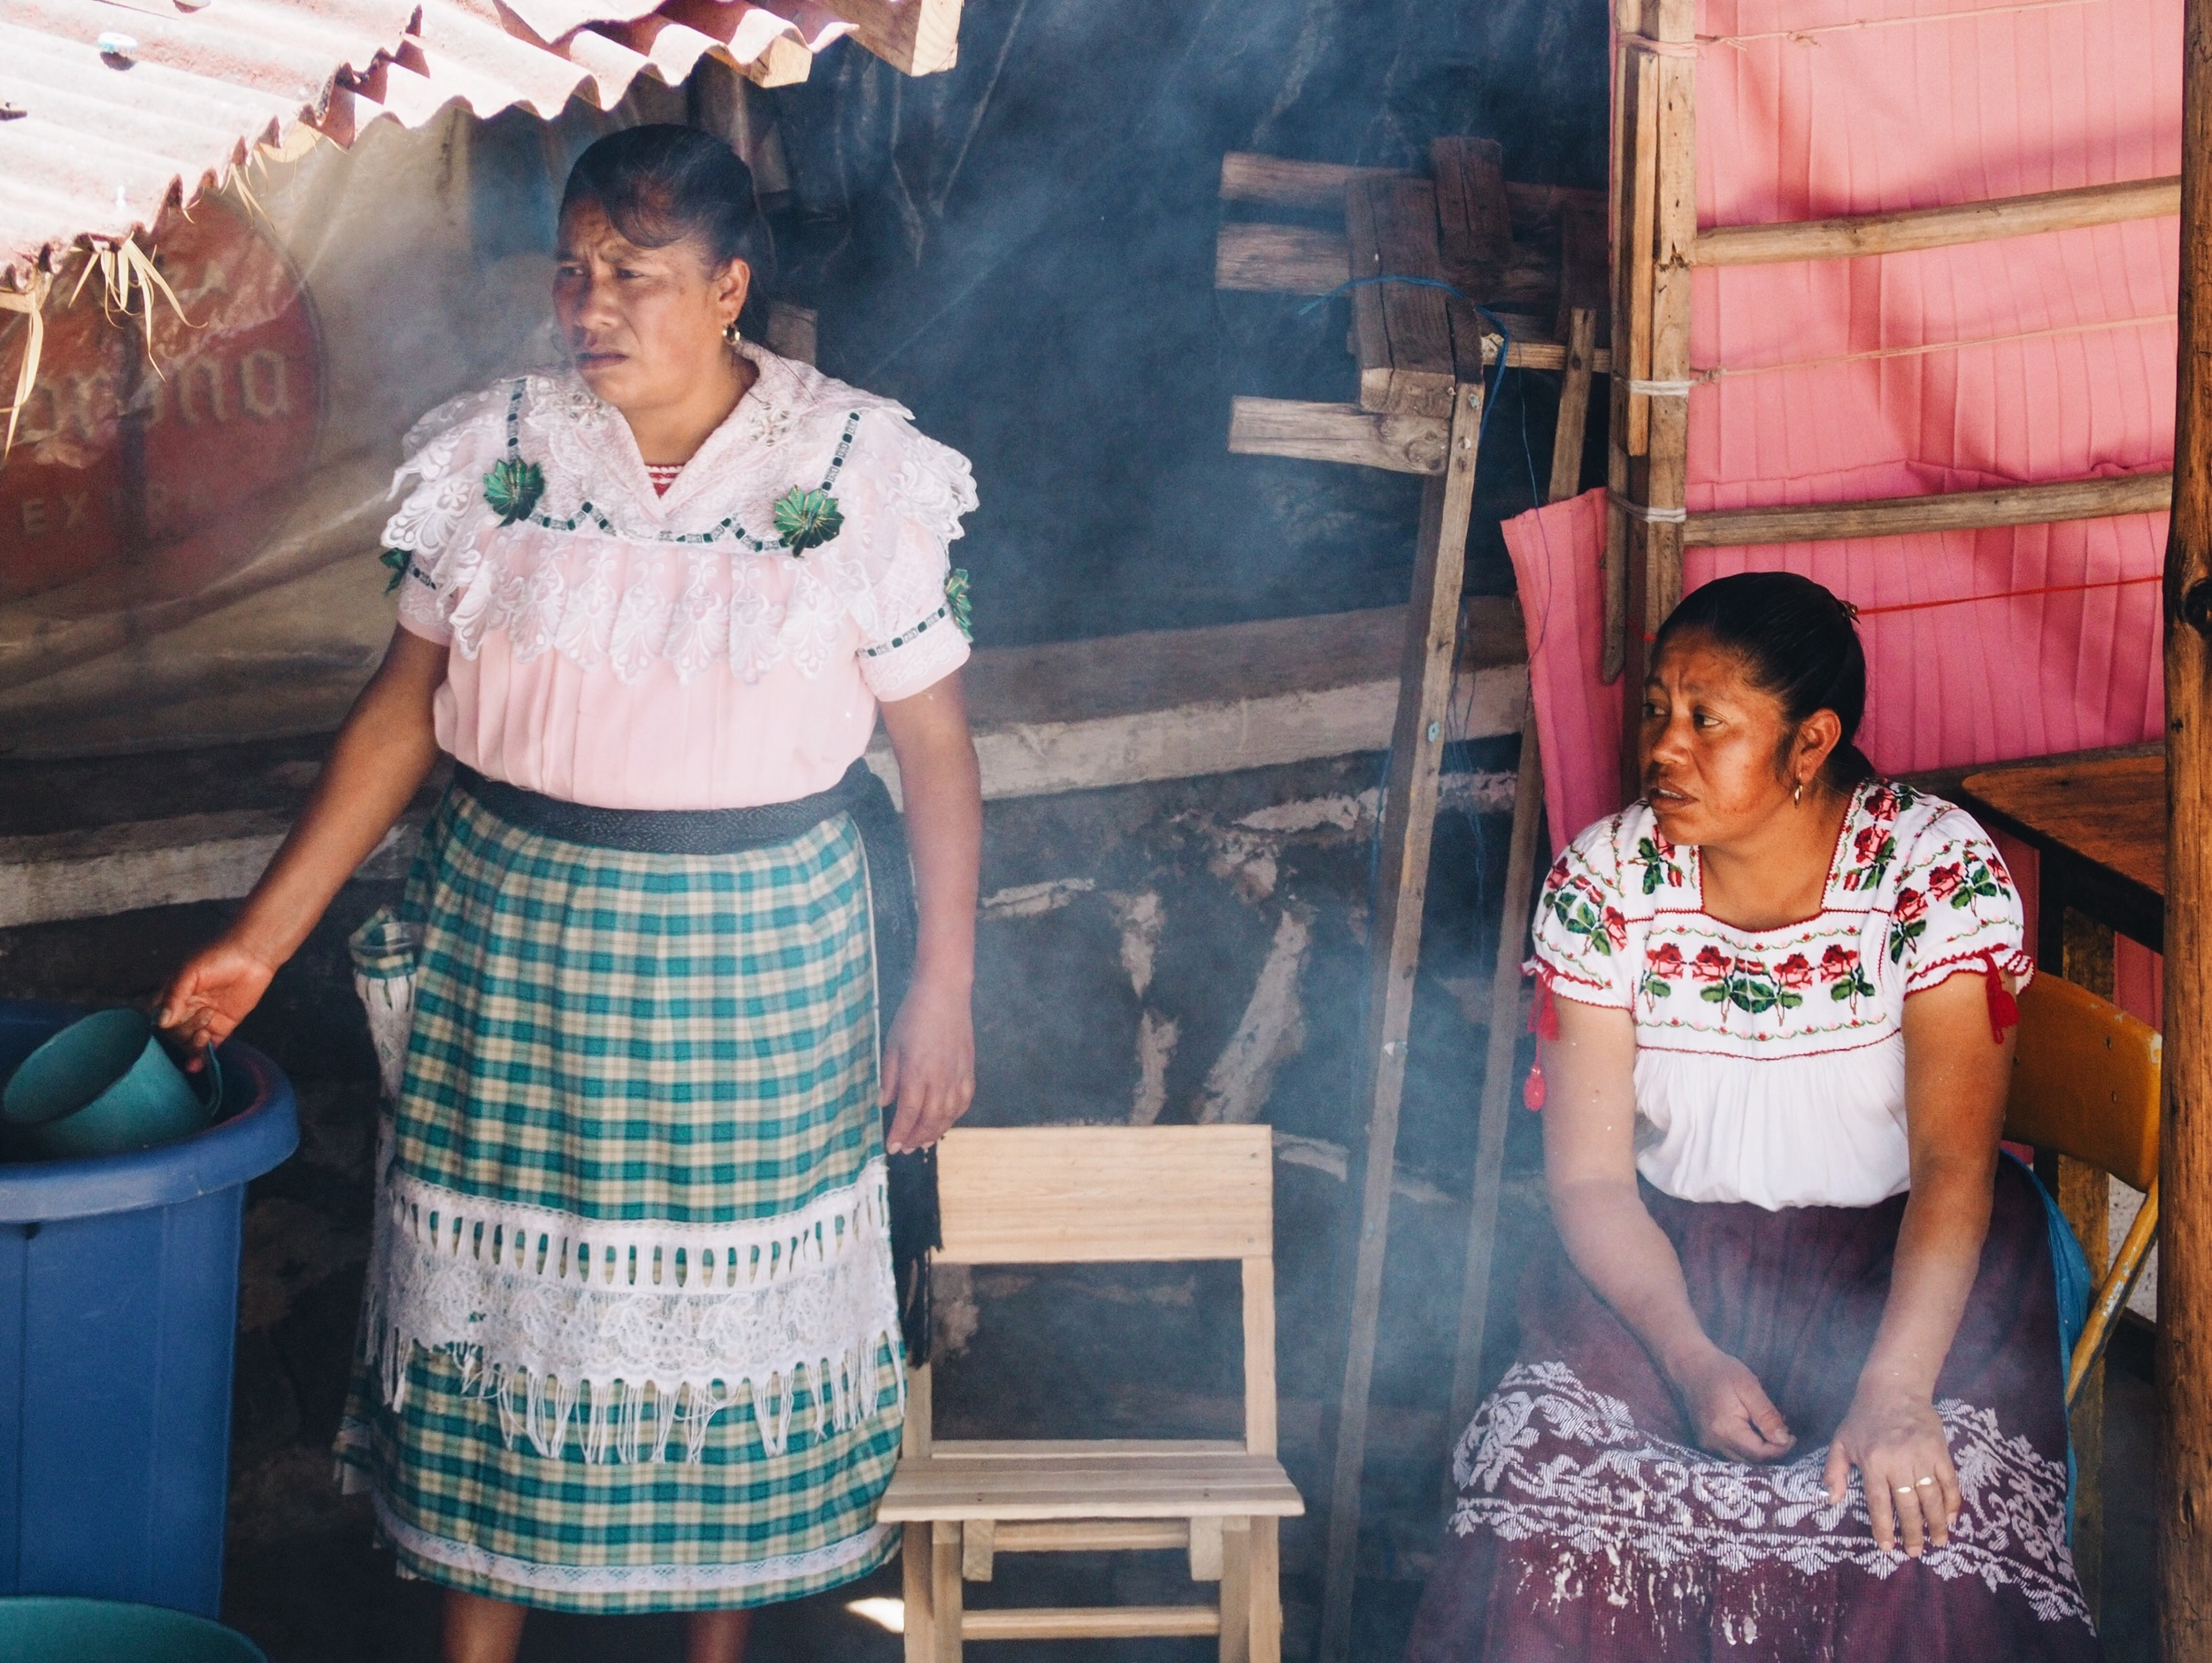 Local women making atole – a traditional hot, sweet drink made from corn, milk, sugar & cinnamon